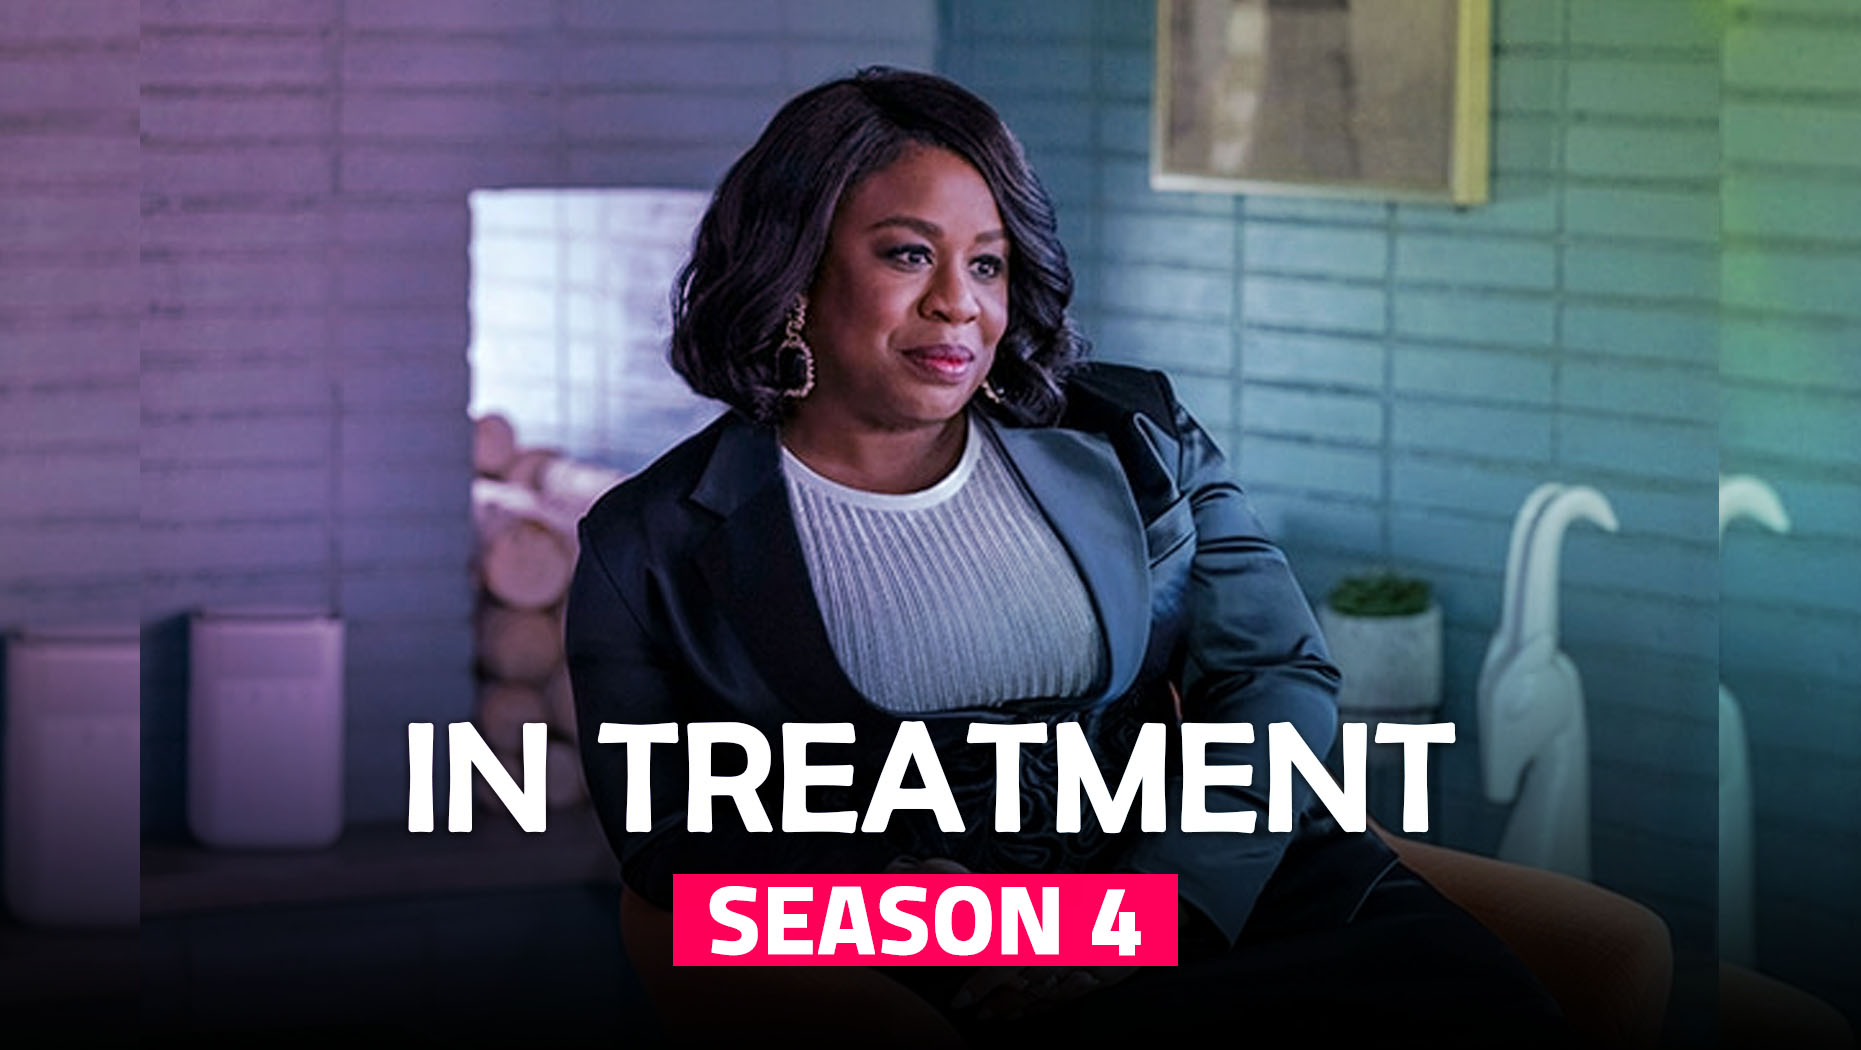 In Treatment Season 4: Release Date, Cast and More!